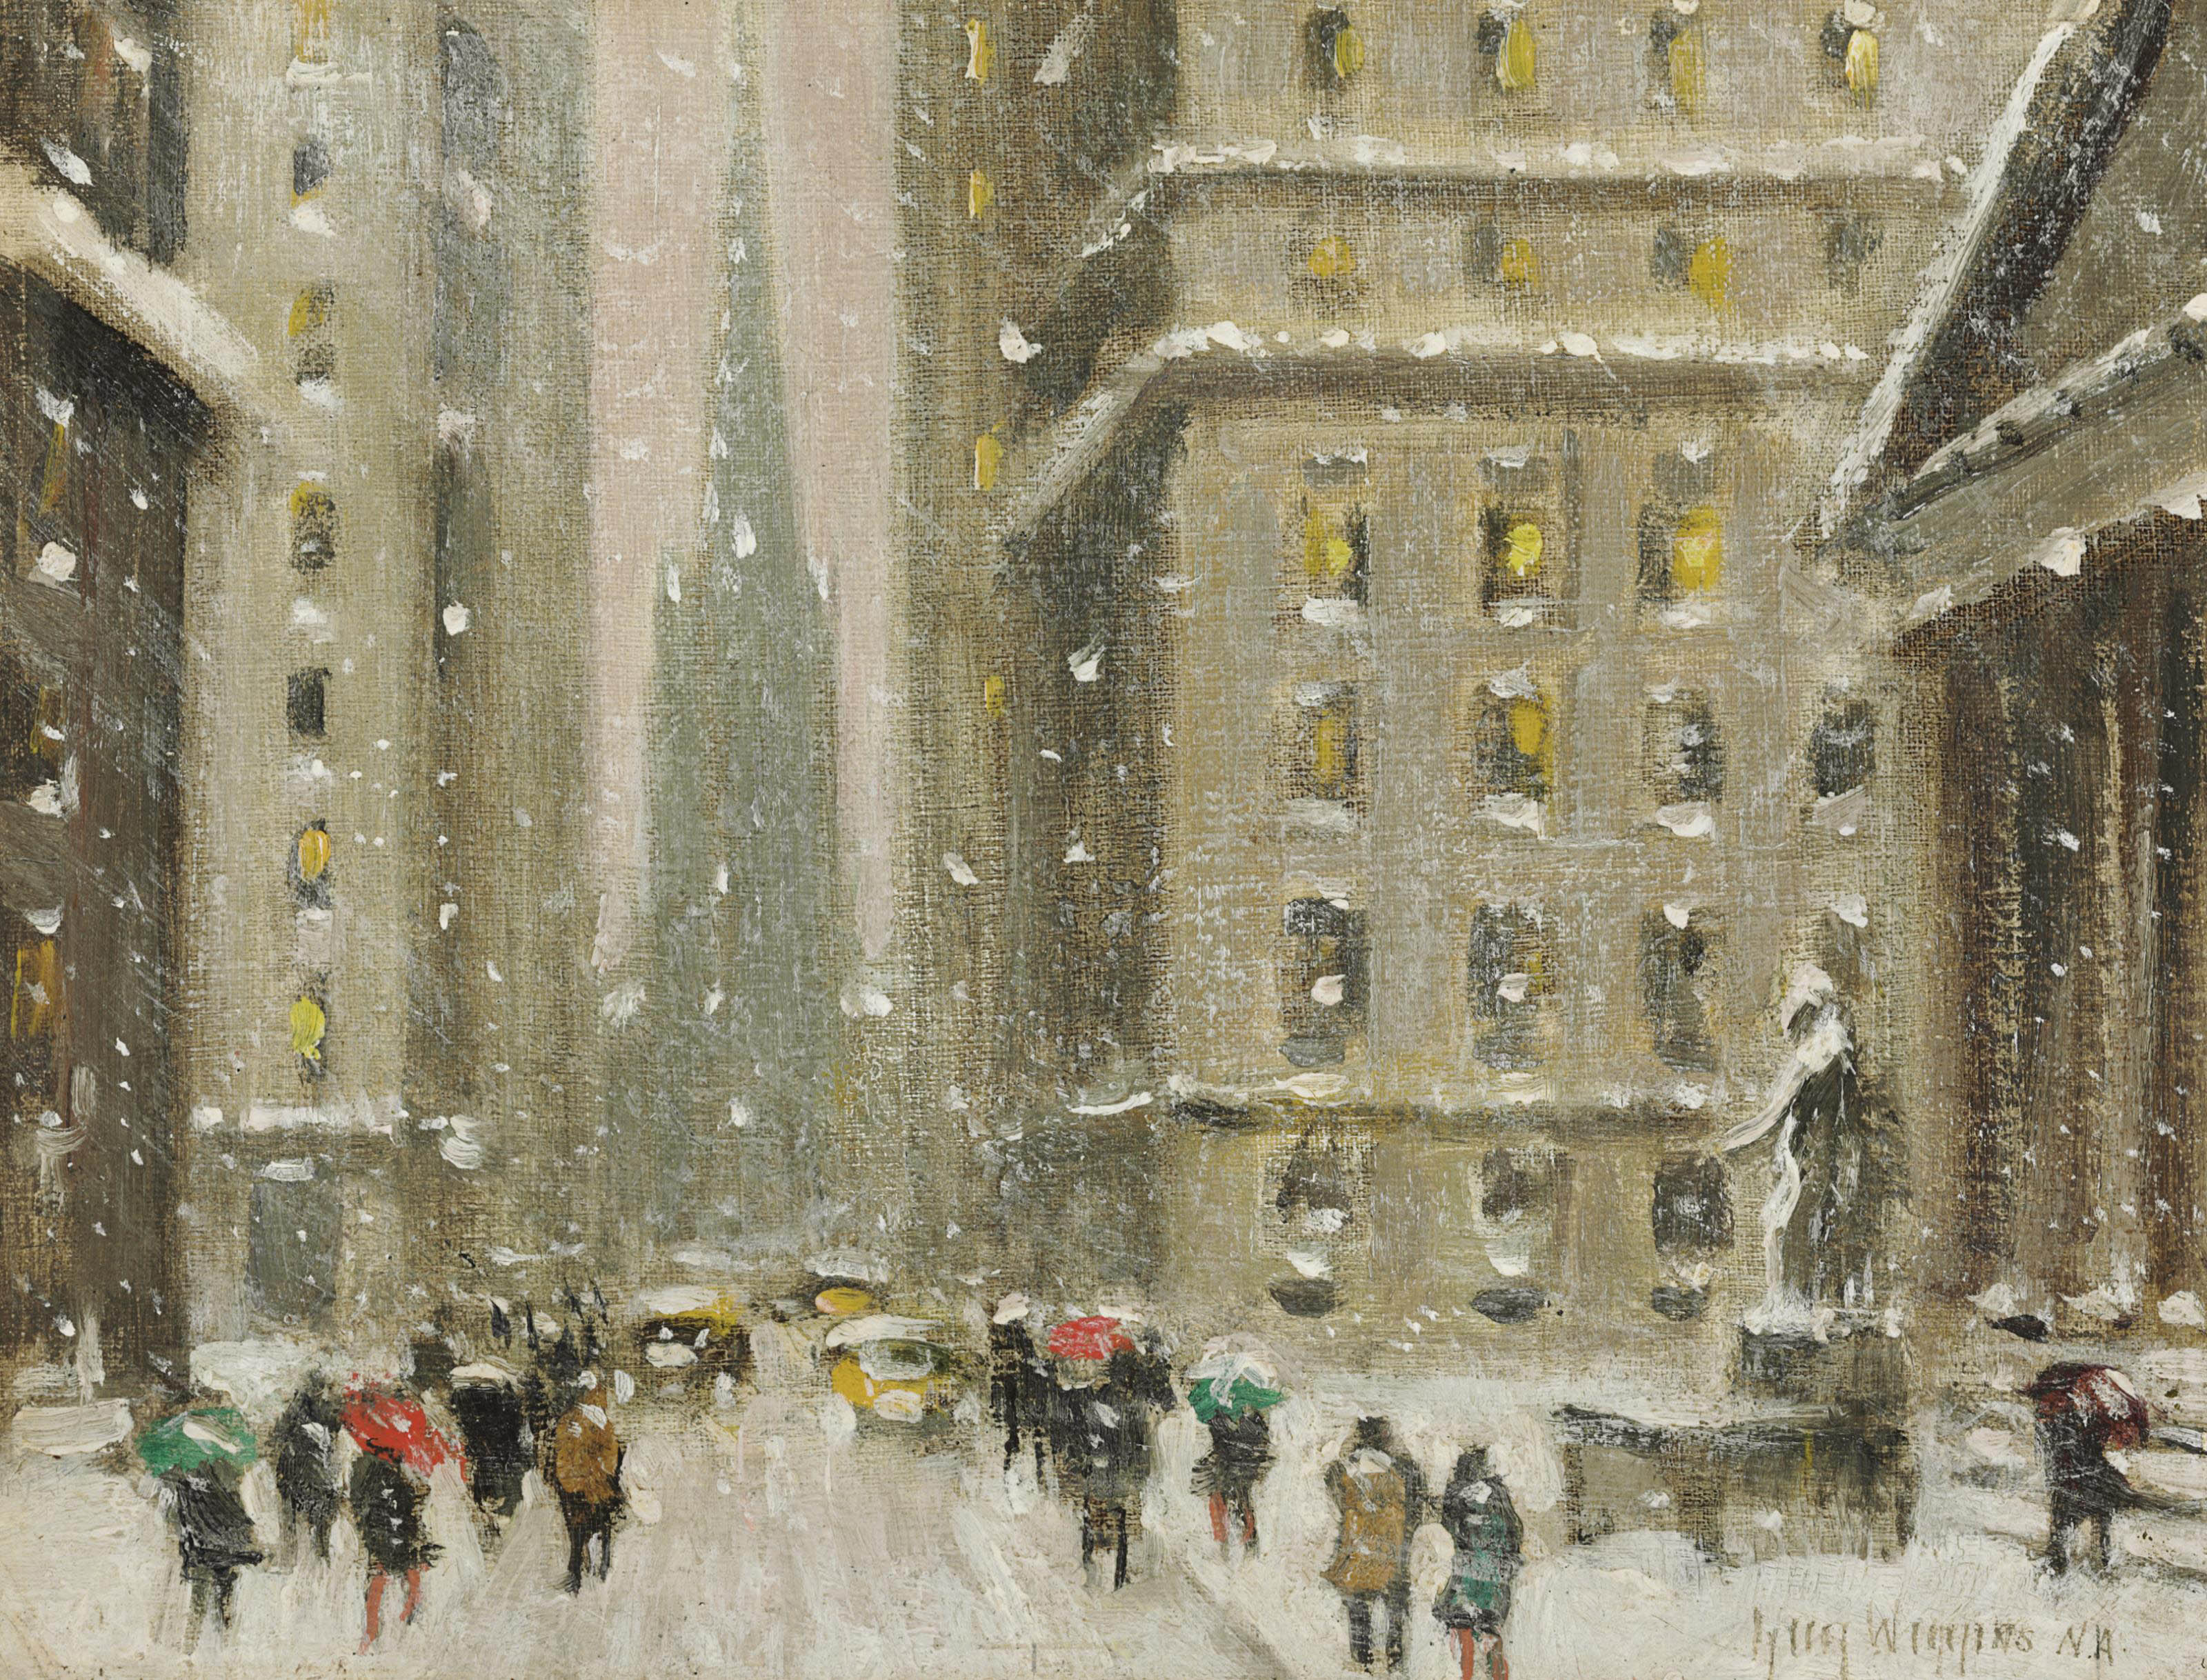 Guy Carleton Wiggins (1883-196